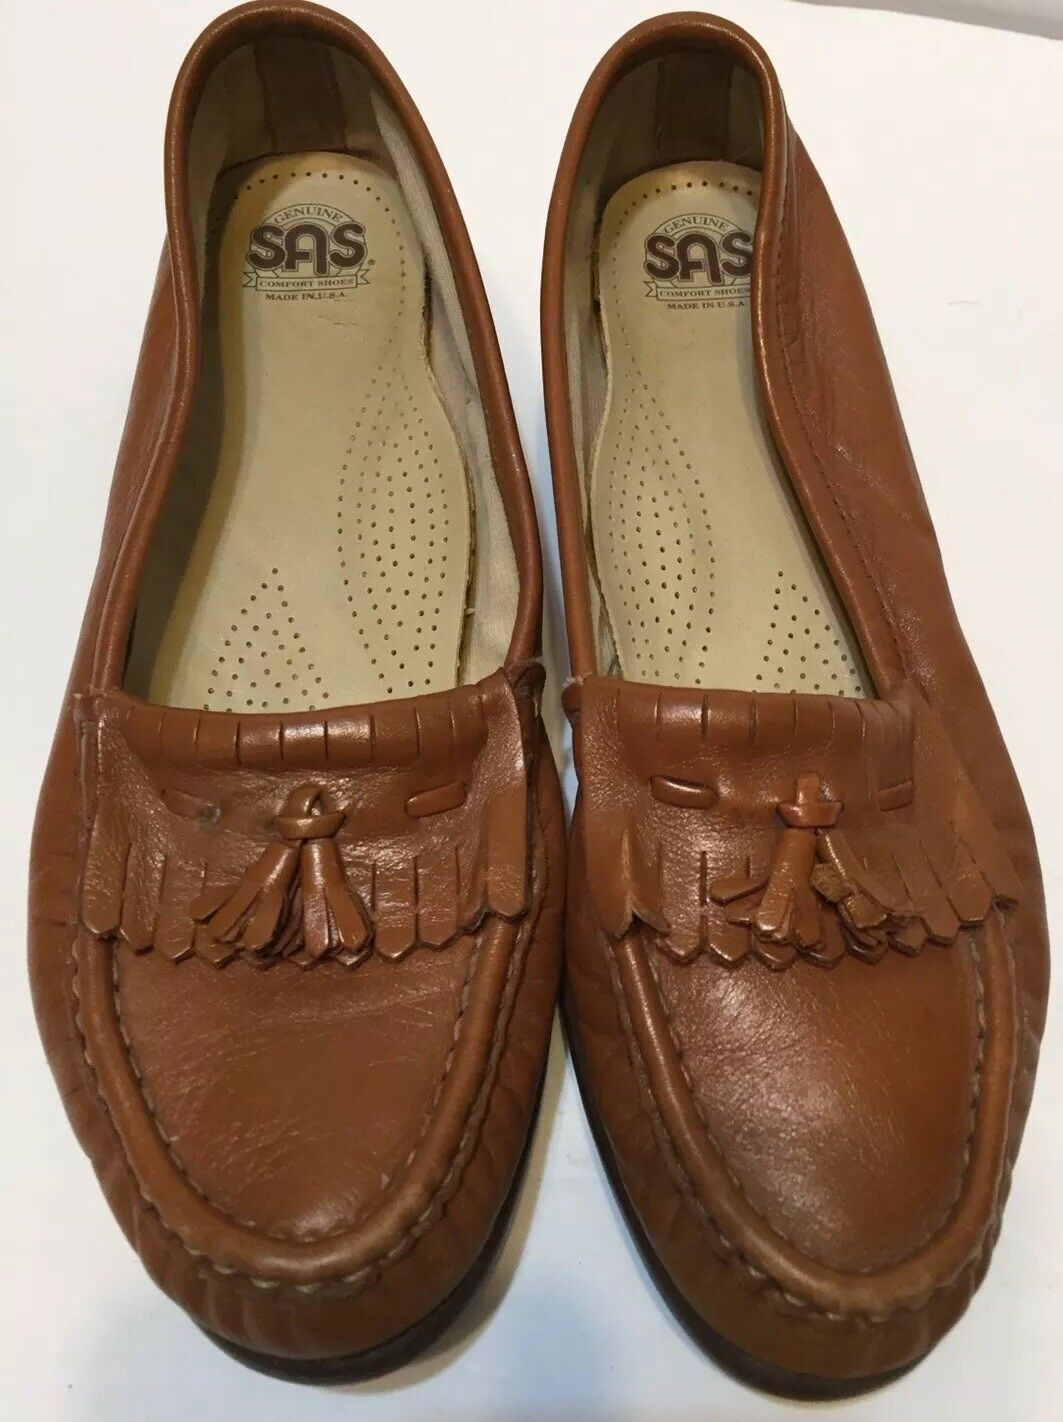 SAS Womens US 7N Lt Brn Leather Slip On Fringed Oxford Loafers Classic Comfort